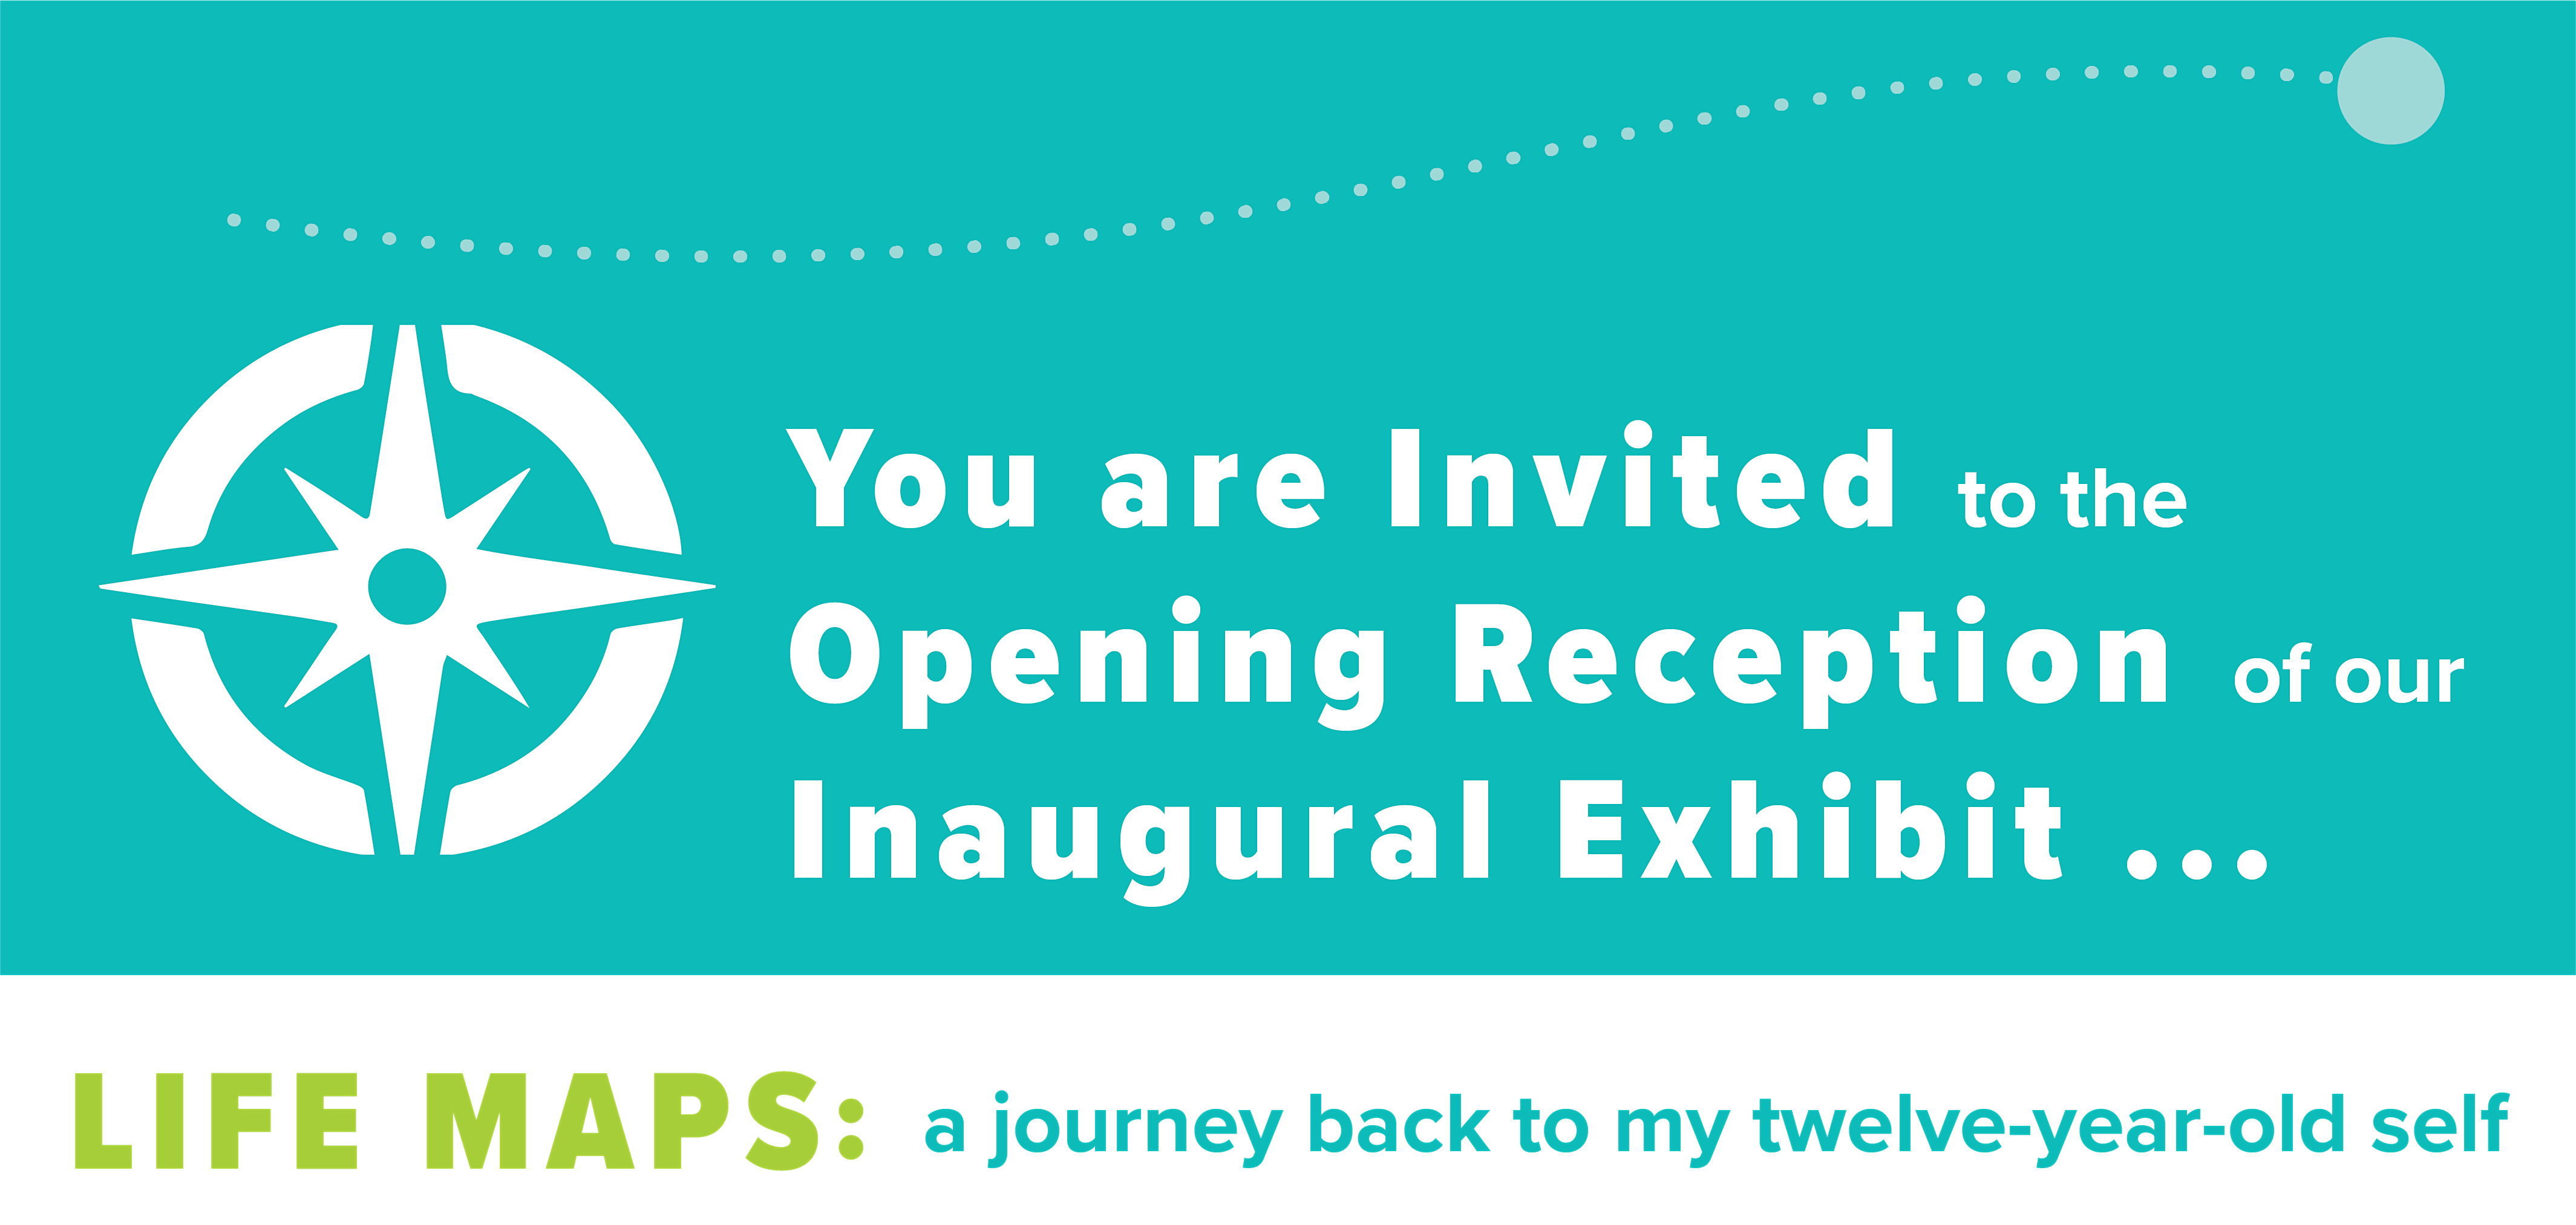 Opening Reception: Life Maps - A Journey Back to My Twelve-Year-Old Self